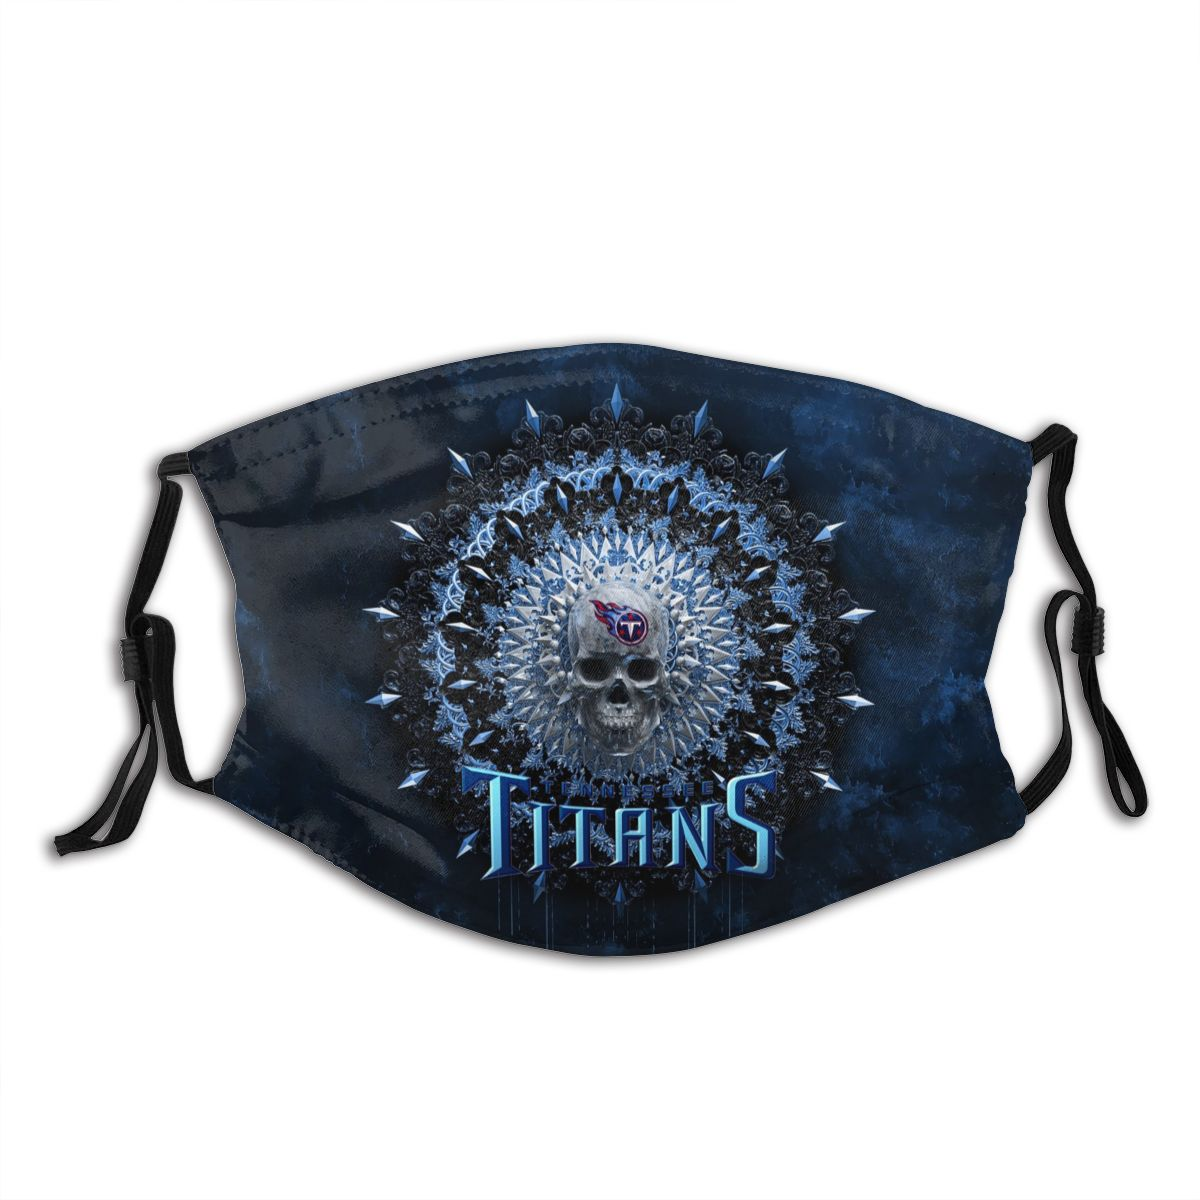 Titans Adult Cloth Face Covering With Filter